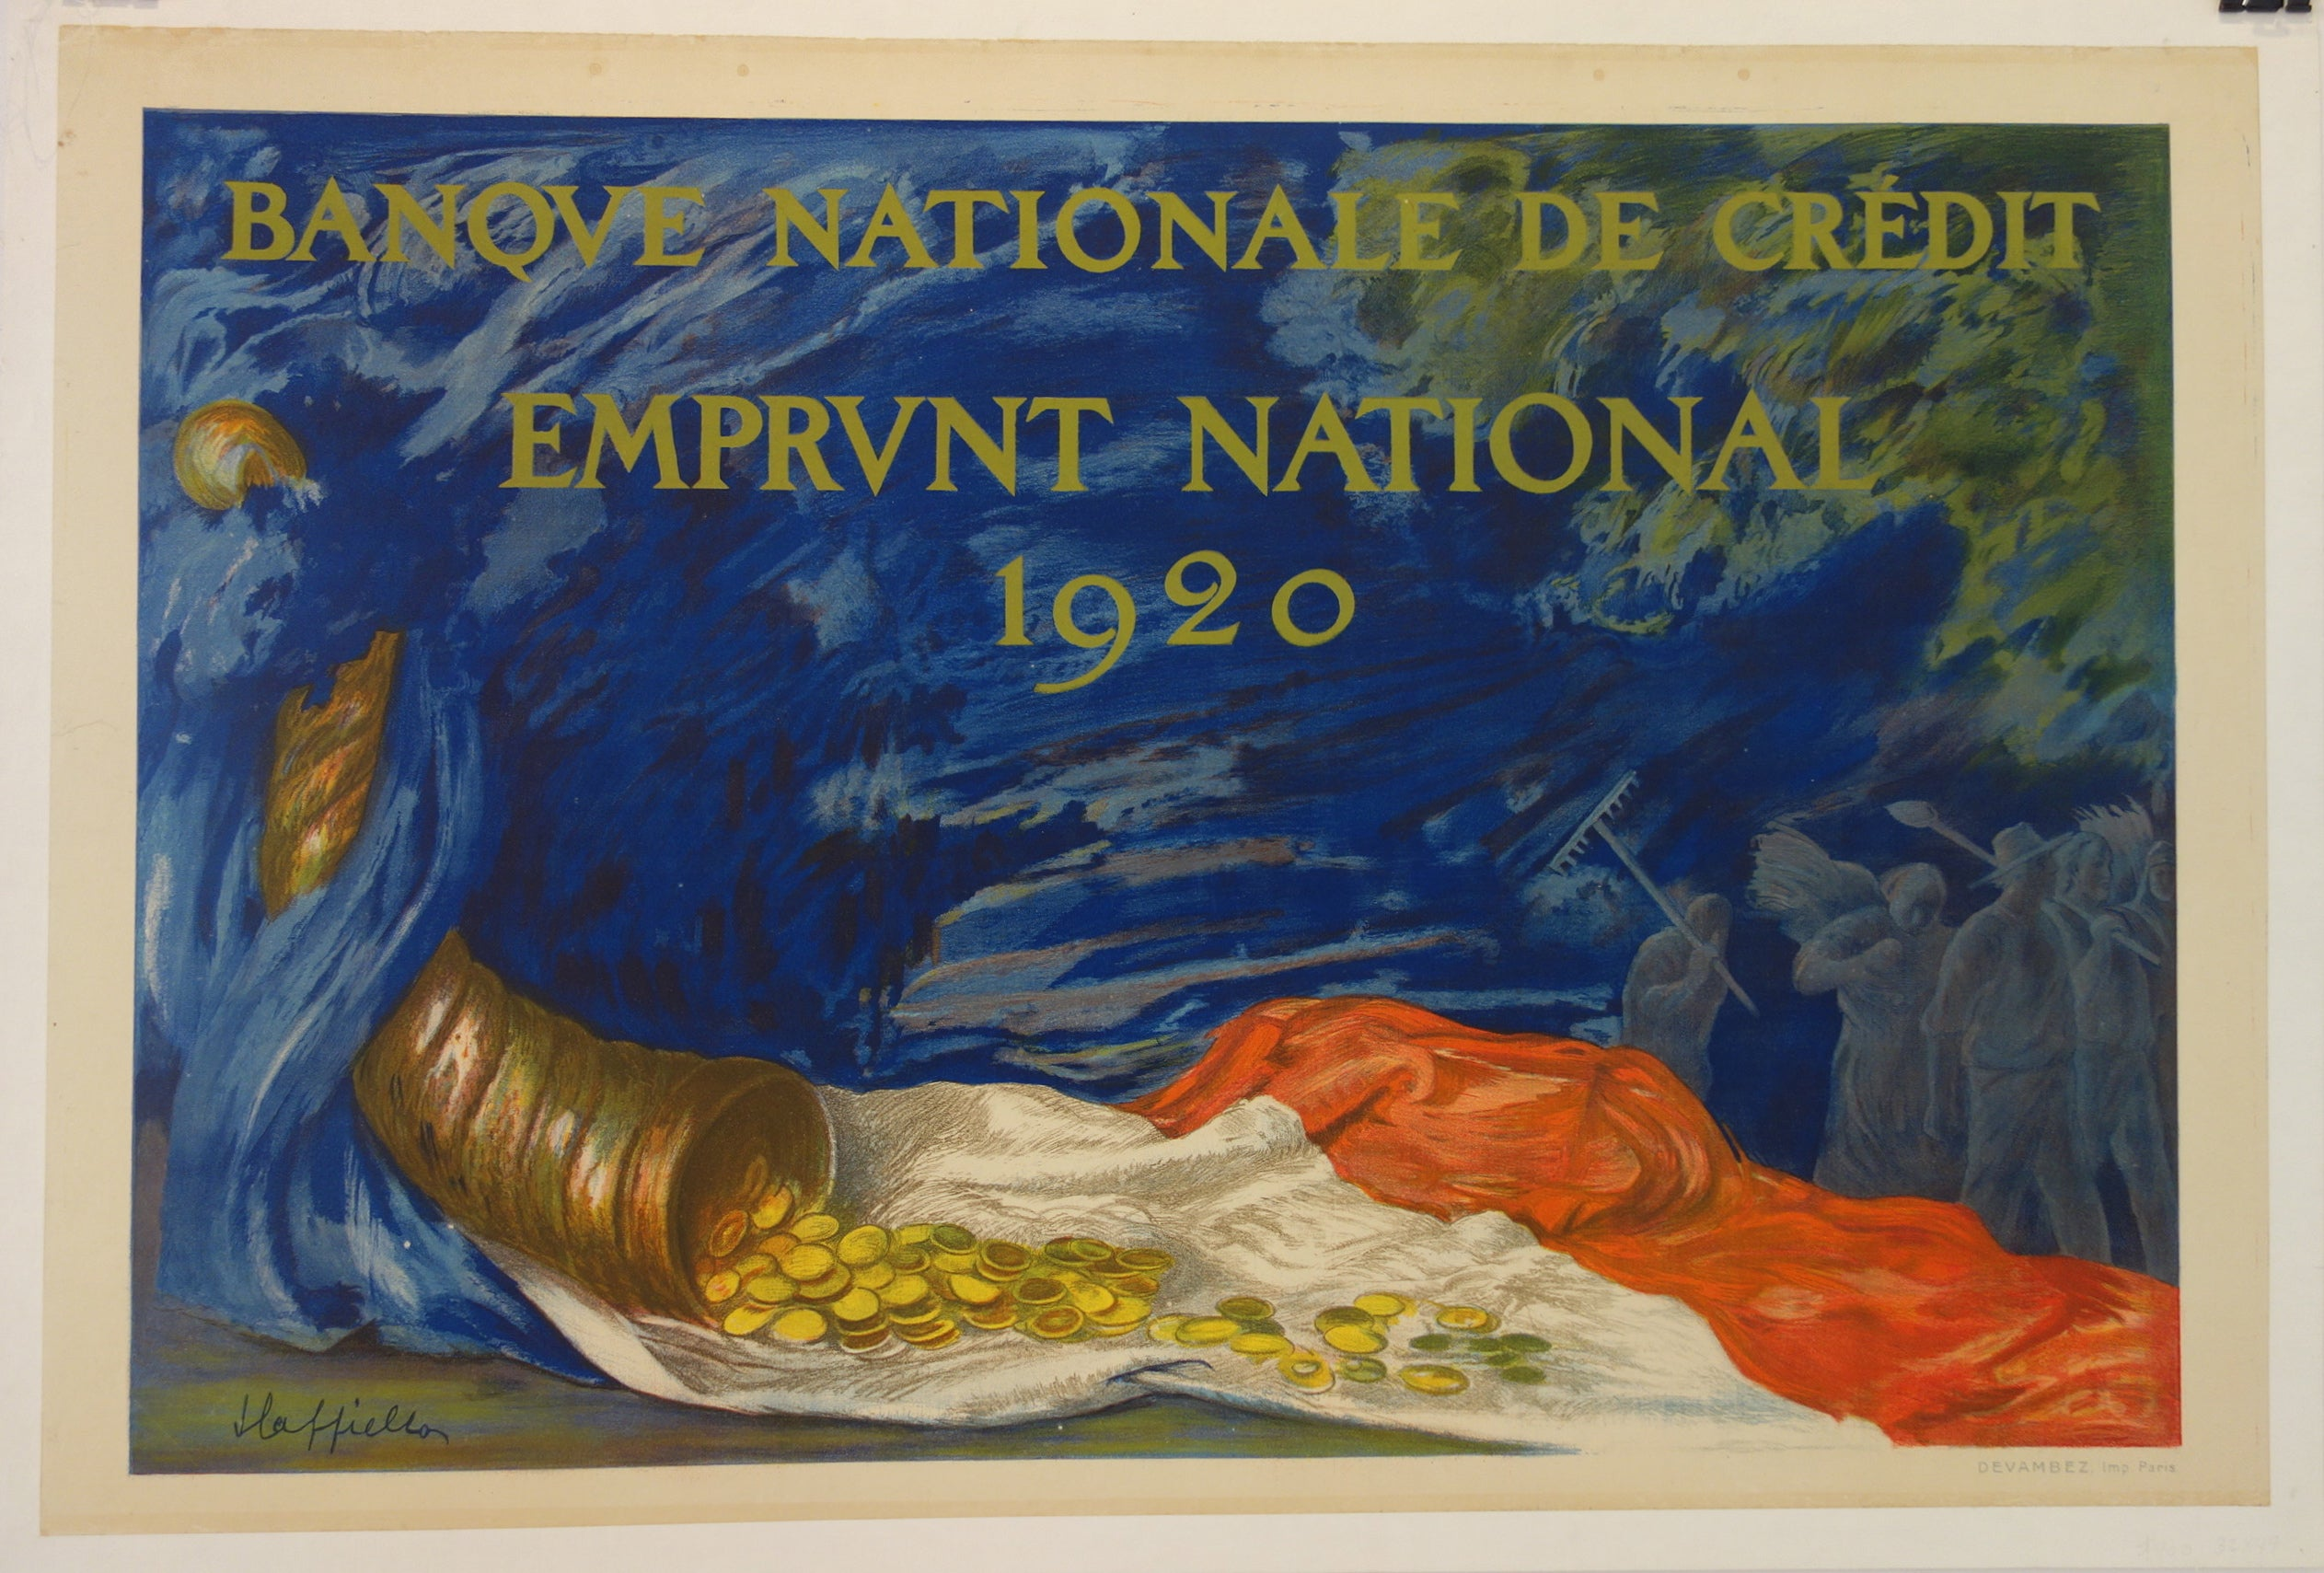 Banque Nationale De Credit - Emprunt National